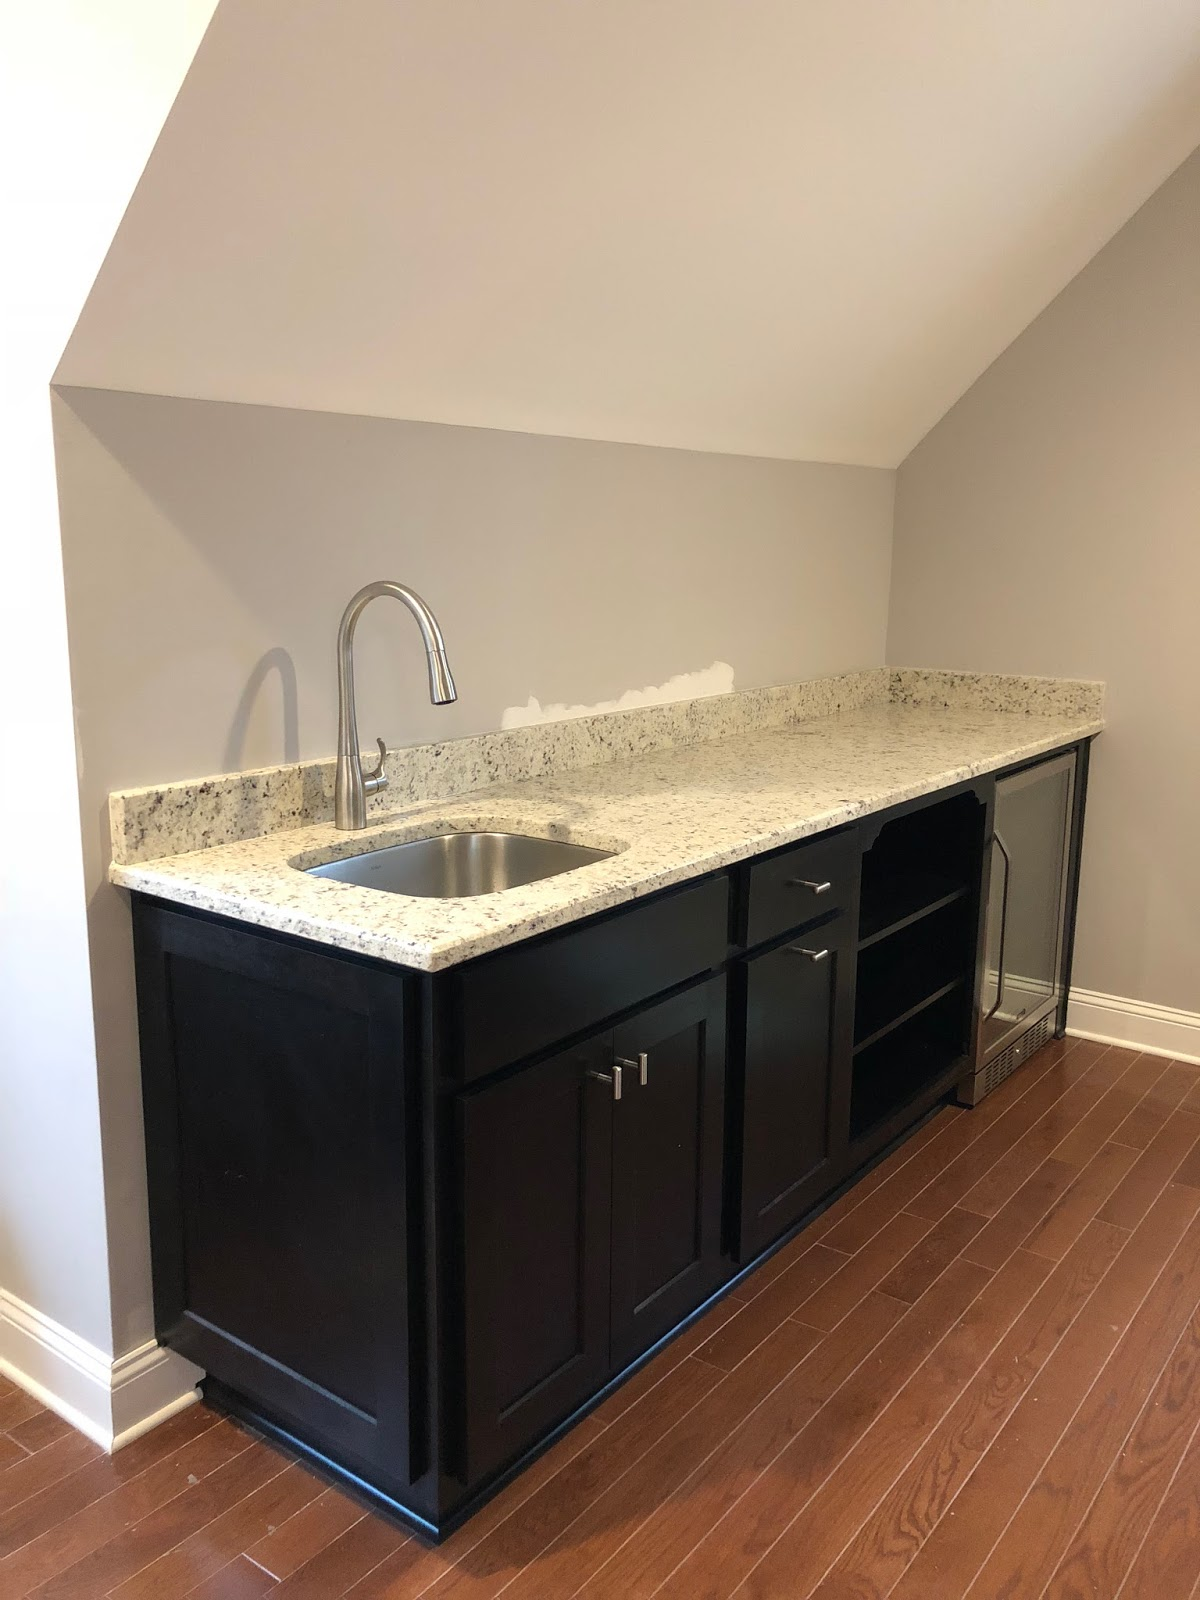 Price Creek Diy Wet Bar Cabinets And Sink